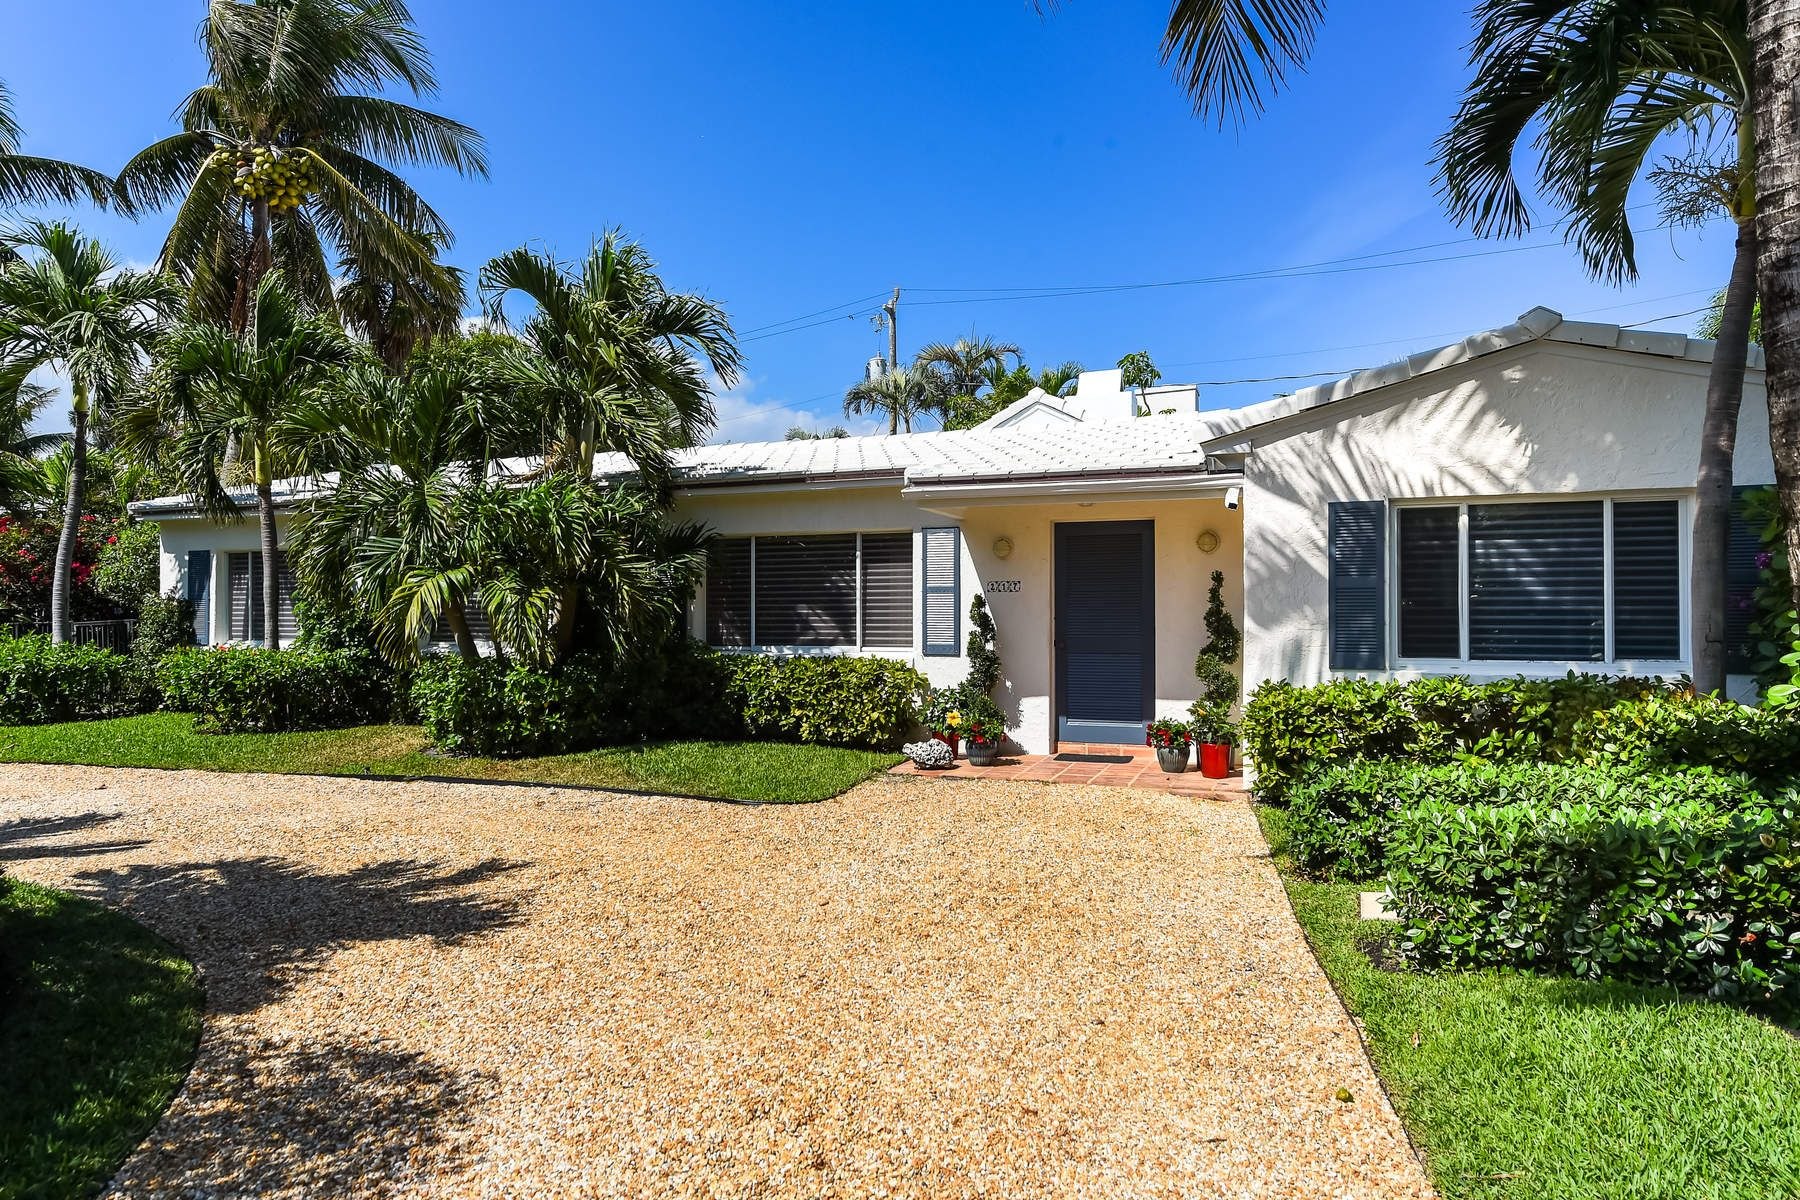 Single Family Home for Sale at North End Beach House 217 Debra Ln, North End, Palm Beach, Florida, 33480 United States